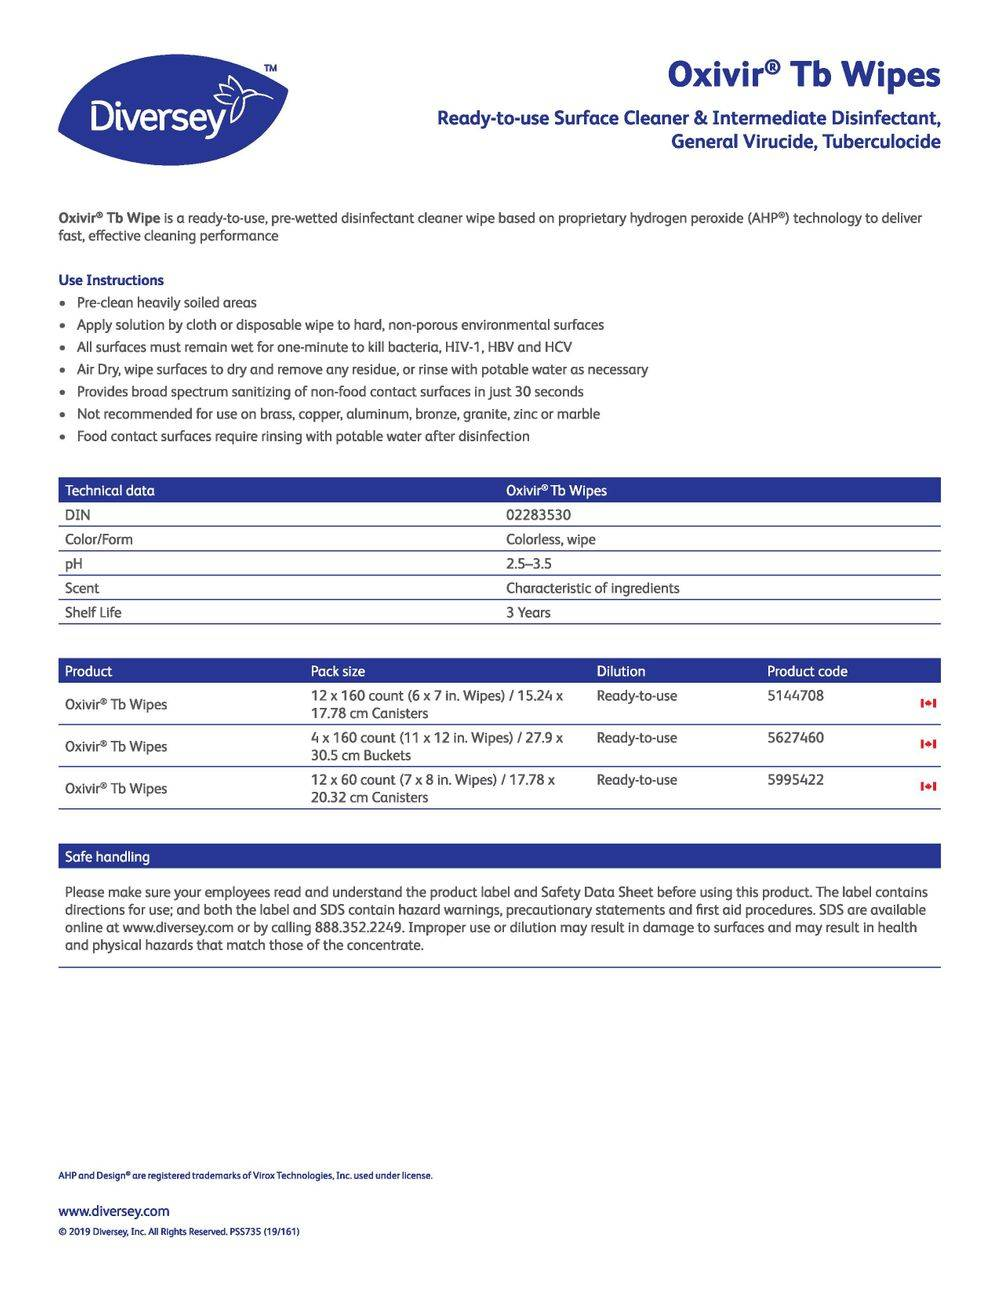 Technical Data Information Sheet Oxivir TB Wipes